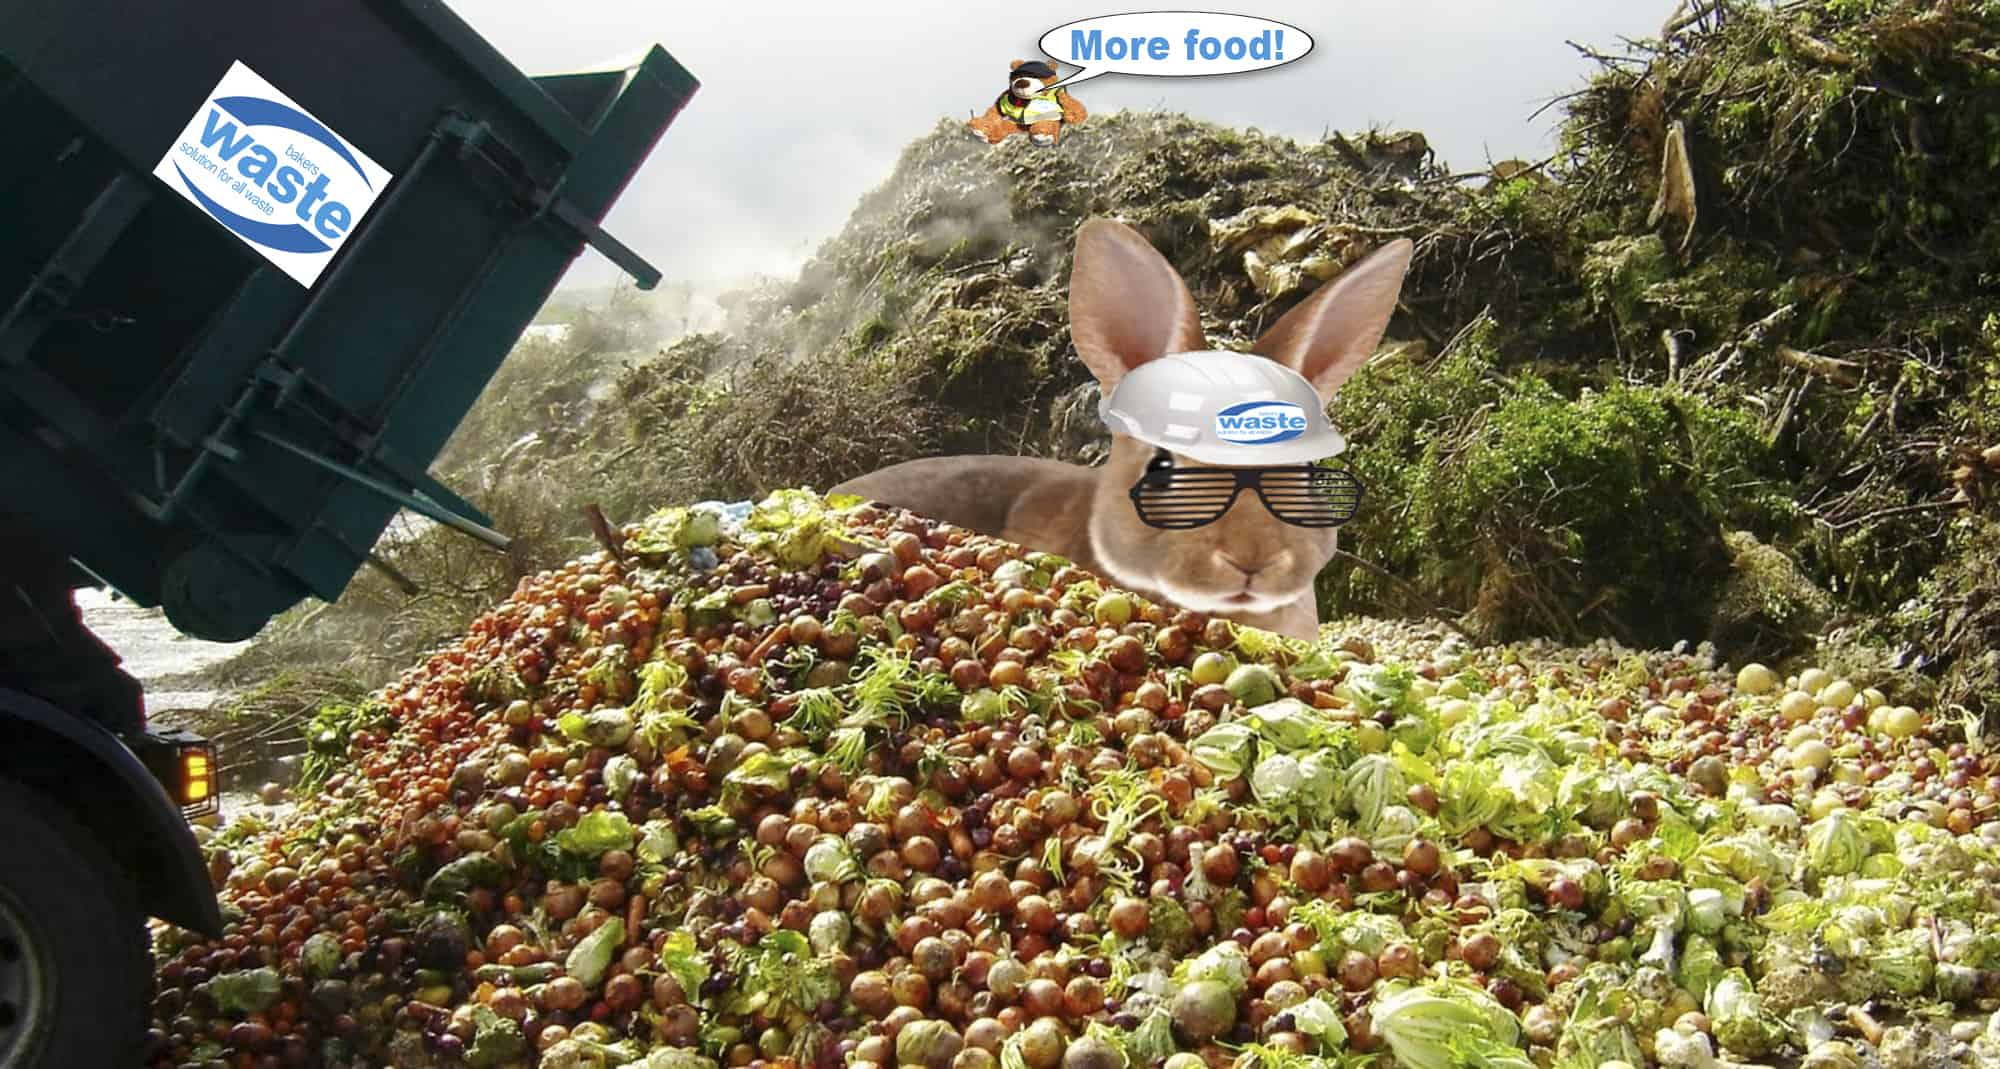 Food waste can be recycled in order to improve the environment